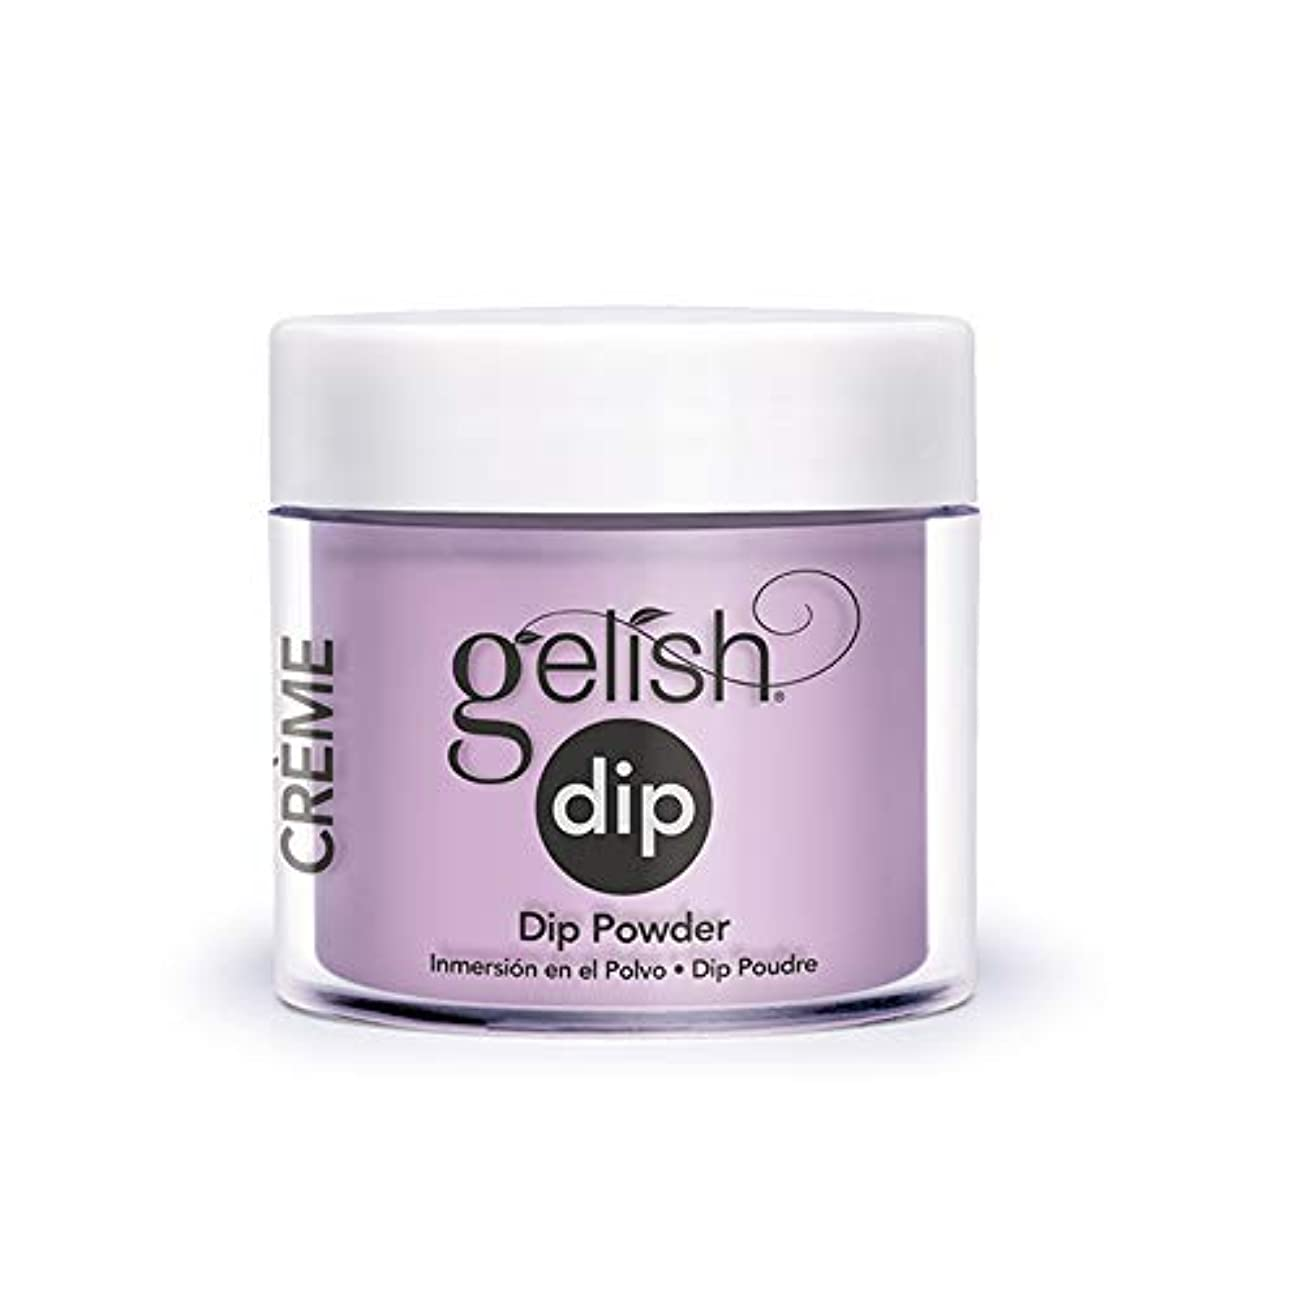 和解するほめる金貸しHarmony Gelish - Acrylic Dip Powder - Invitation Only - 23g / 0.8oz